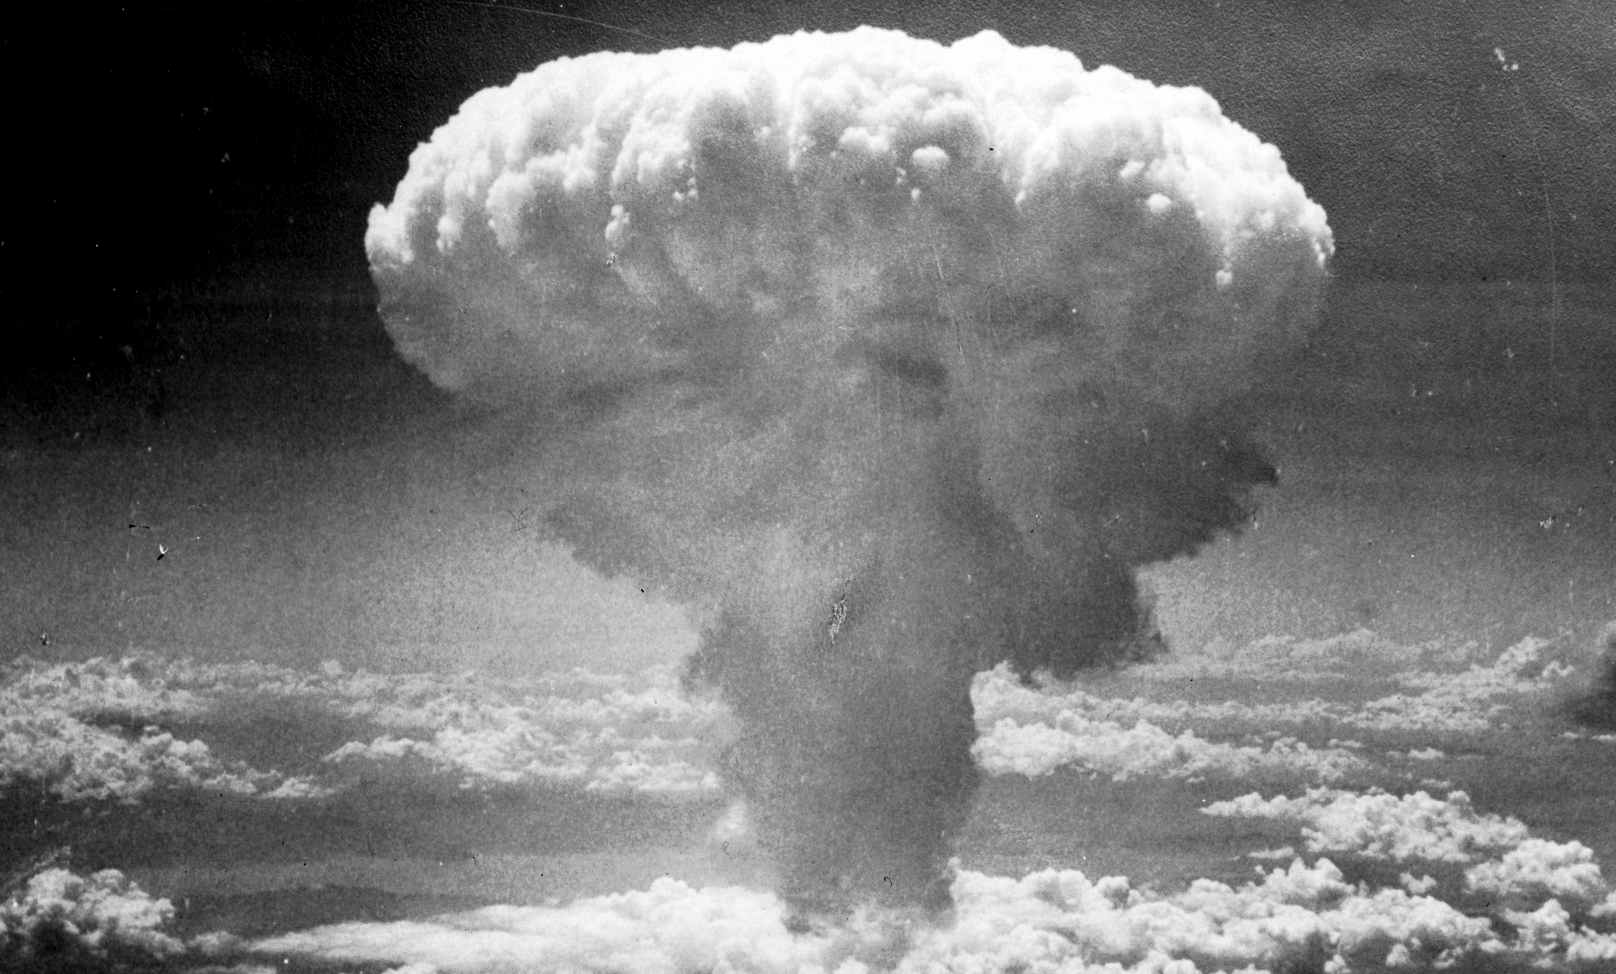 Over Nagasaki on August 9, 1945… Credit: Wikimedia Commons